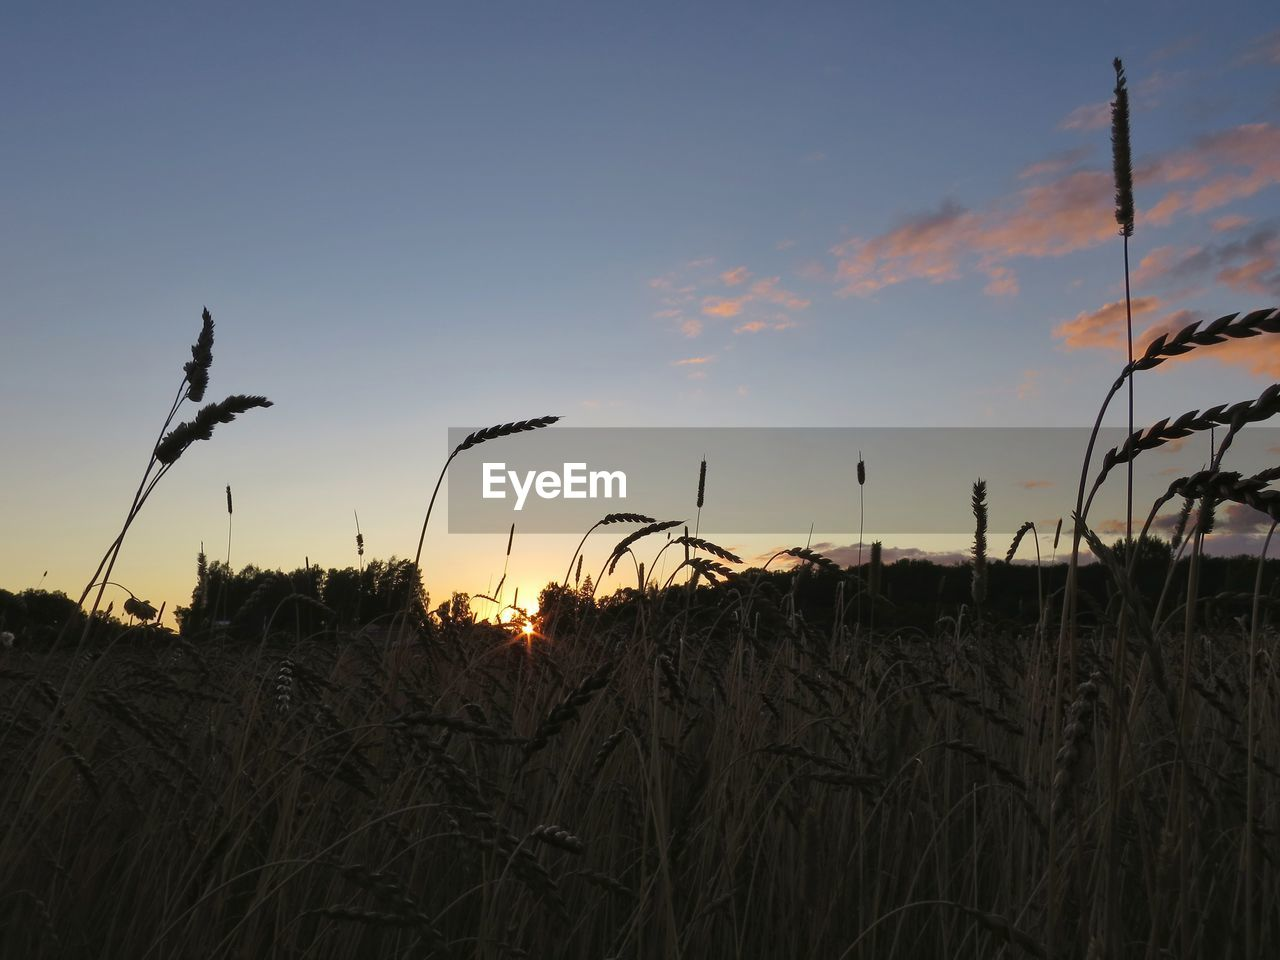 growth, nature, sunset, plant, beauty in nature, tranquility, tranquil scene, field, no people, sky, outdoors, scenics, silhouette, landscape, grass, day, close-up